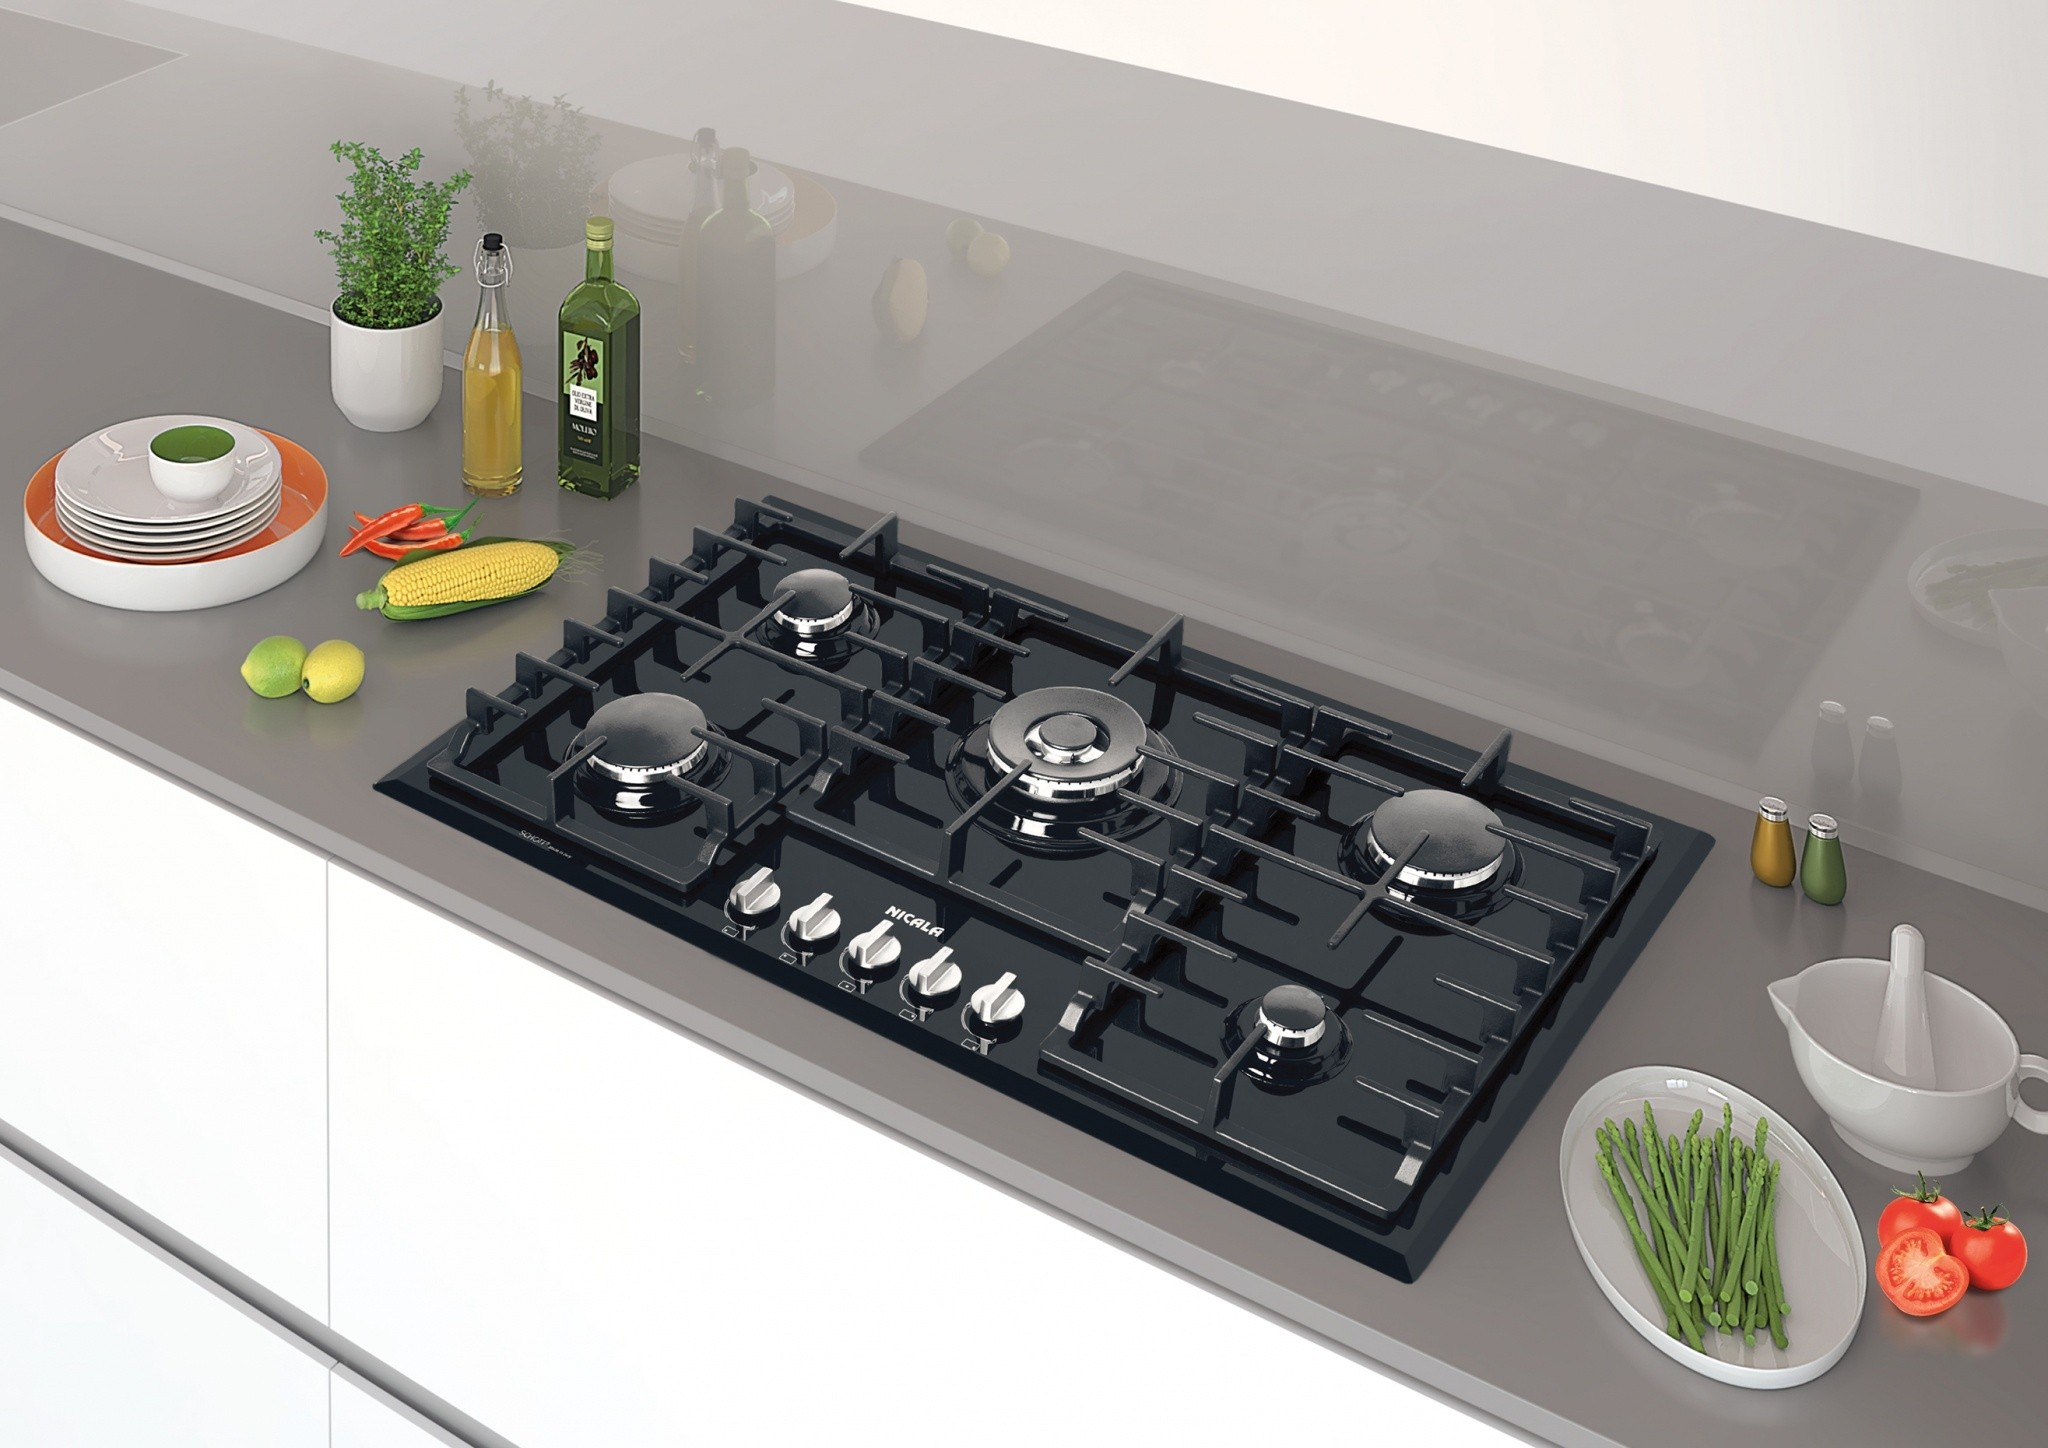 Nicala-Glass Cooktop model 2